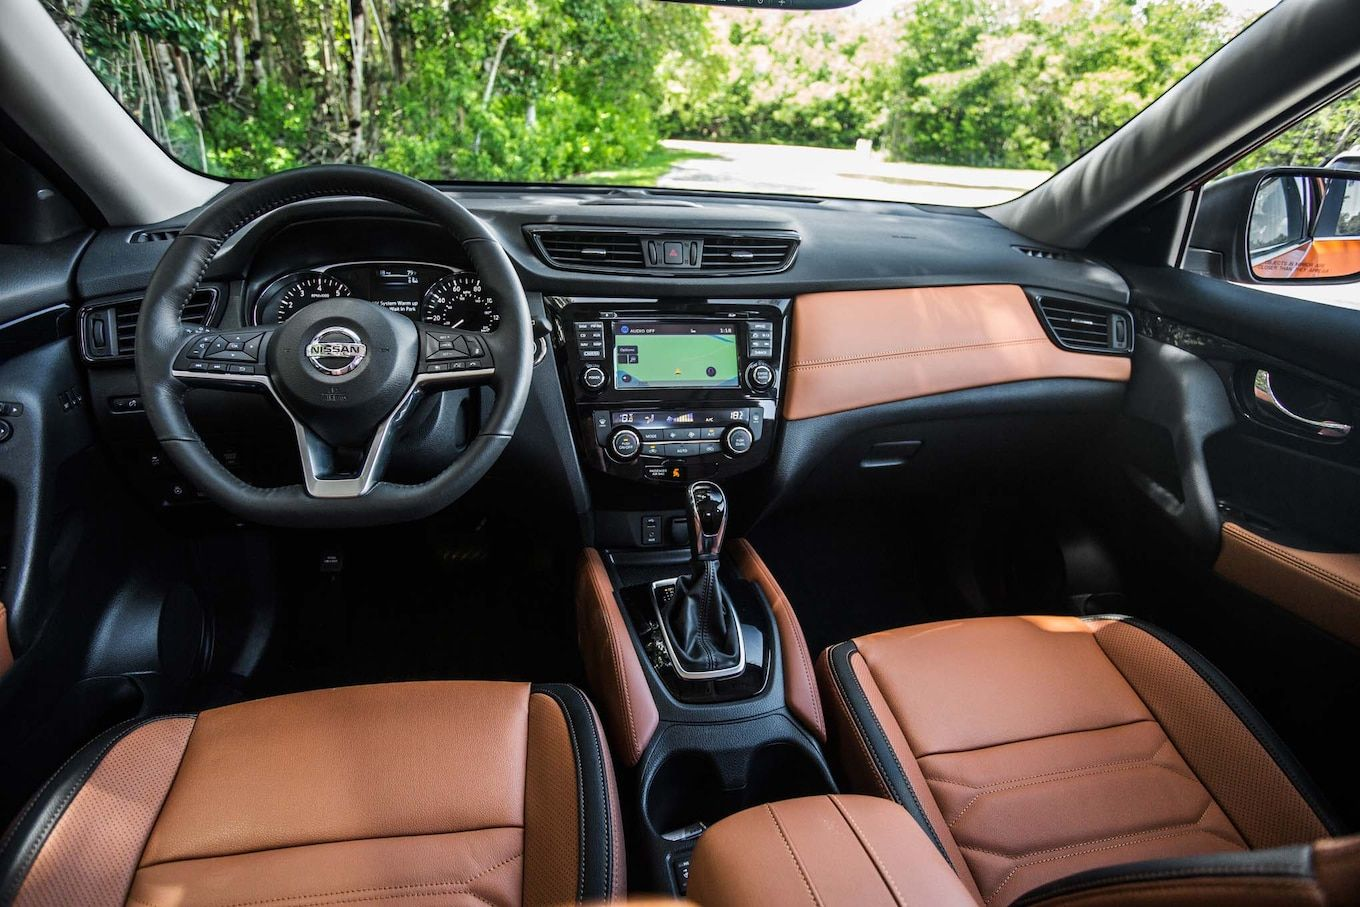 2017 Nissan Rogue Interior Specs. Feels free to follow us